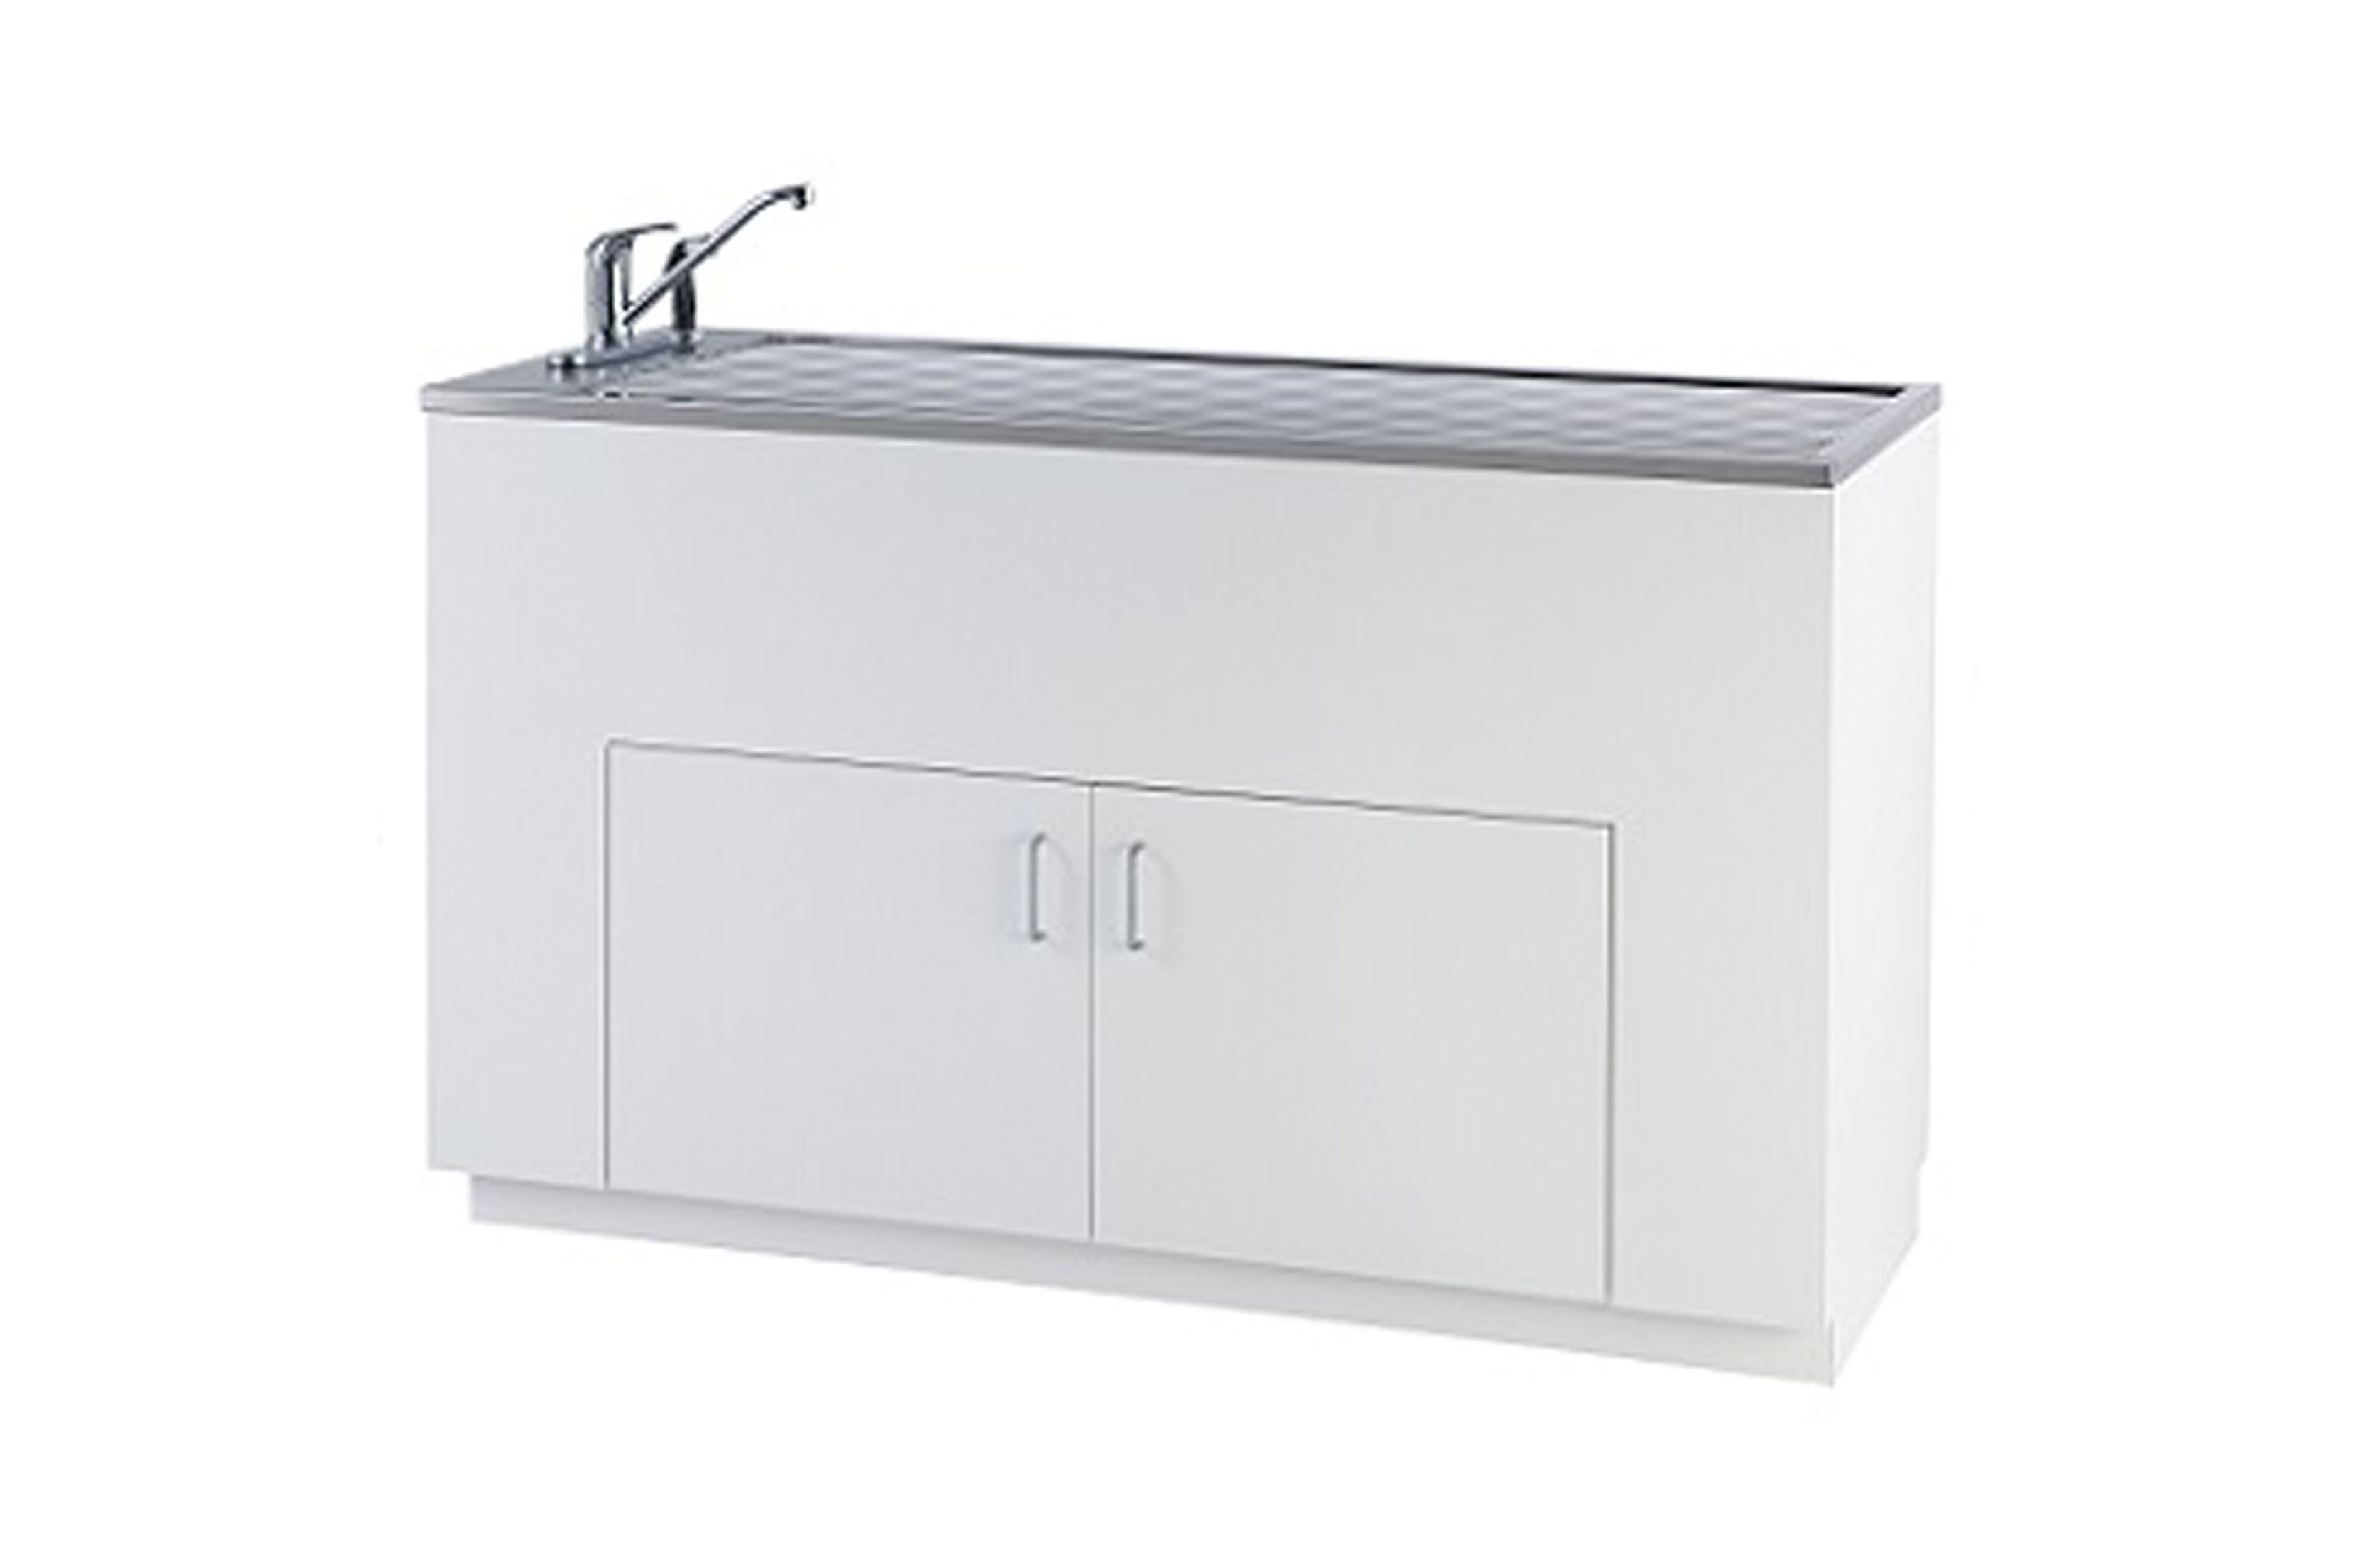 full-wetprep-cabinet-with-2-doors87a72e009071400cae3698372f3795aa (1)